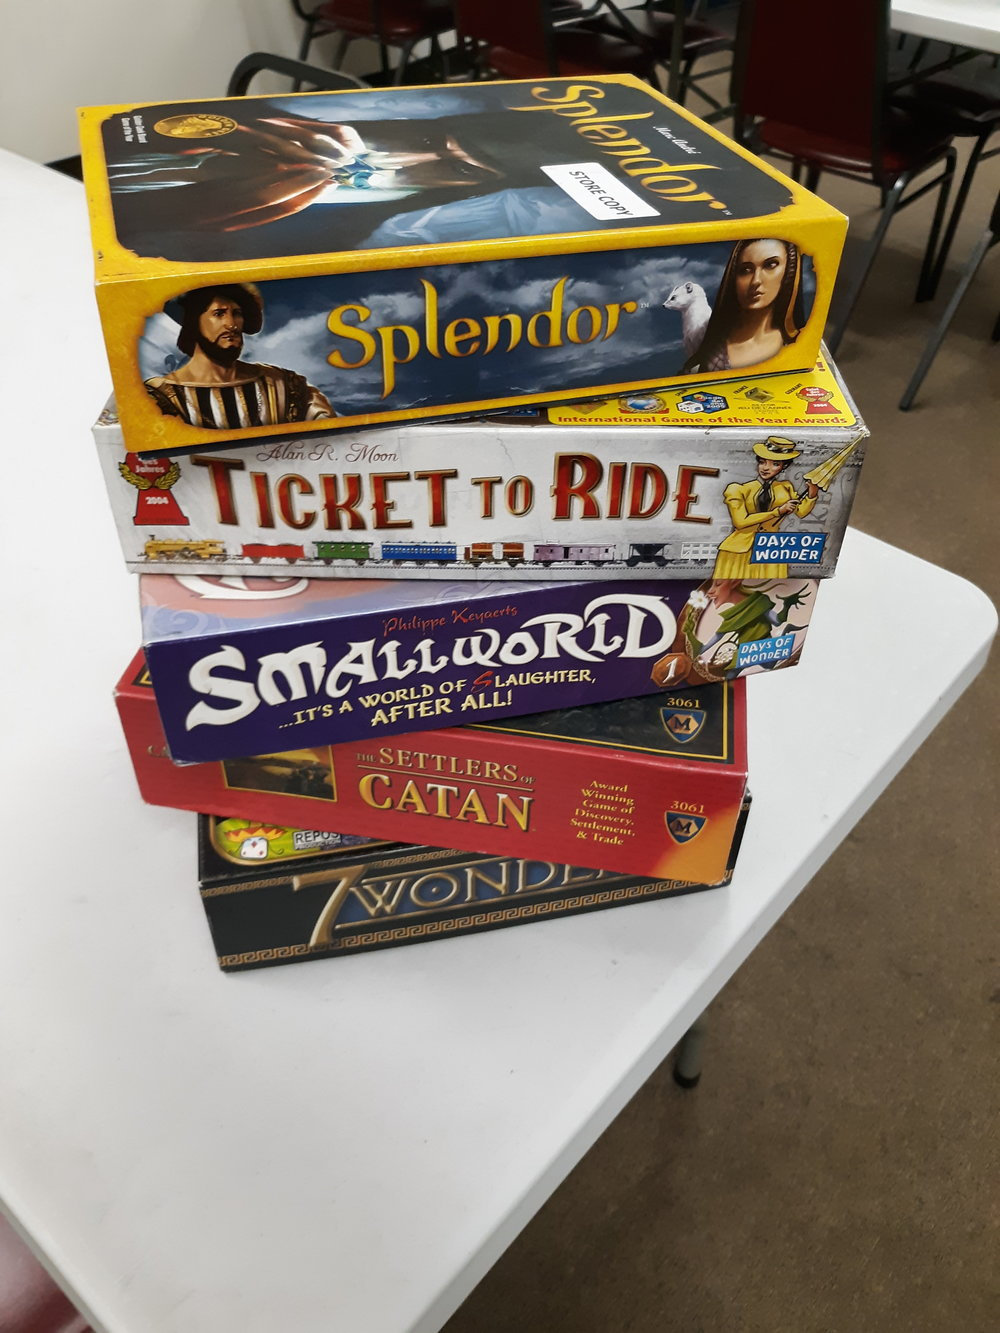 Board Games - ProductsWe Carry tons of the best euro and strategic board games; awesome stuff you won't find anywhere else!EventsDCG hosts FREE board game nights each week. So grab a few of your favorites from home and come meet some local gamers. Check out the events page for dates and times.DemosWant to test drive before you buy? We have open box demo copies of our most popular games; drop in and give one a spin!